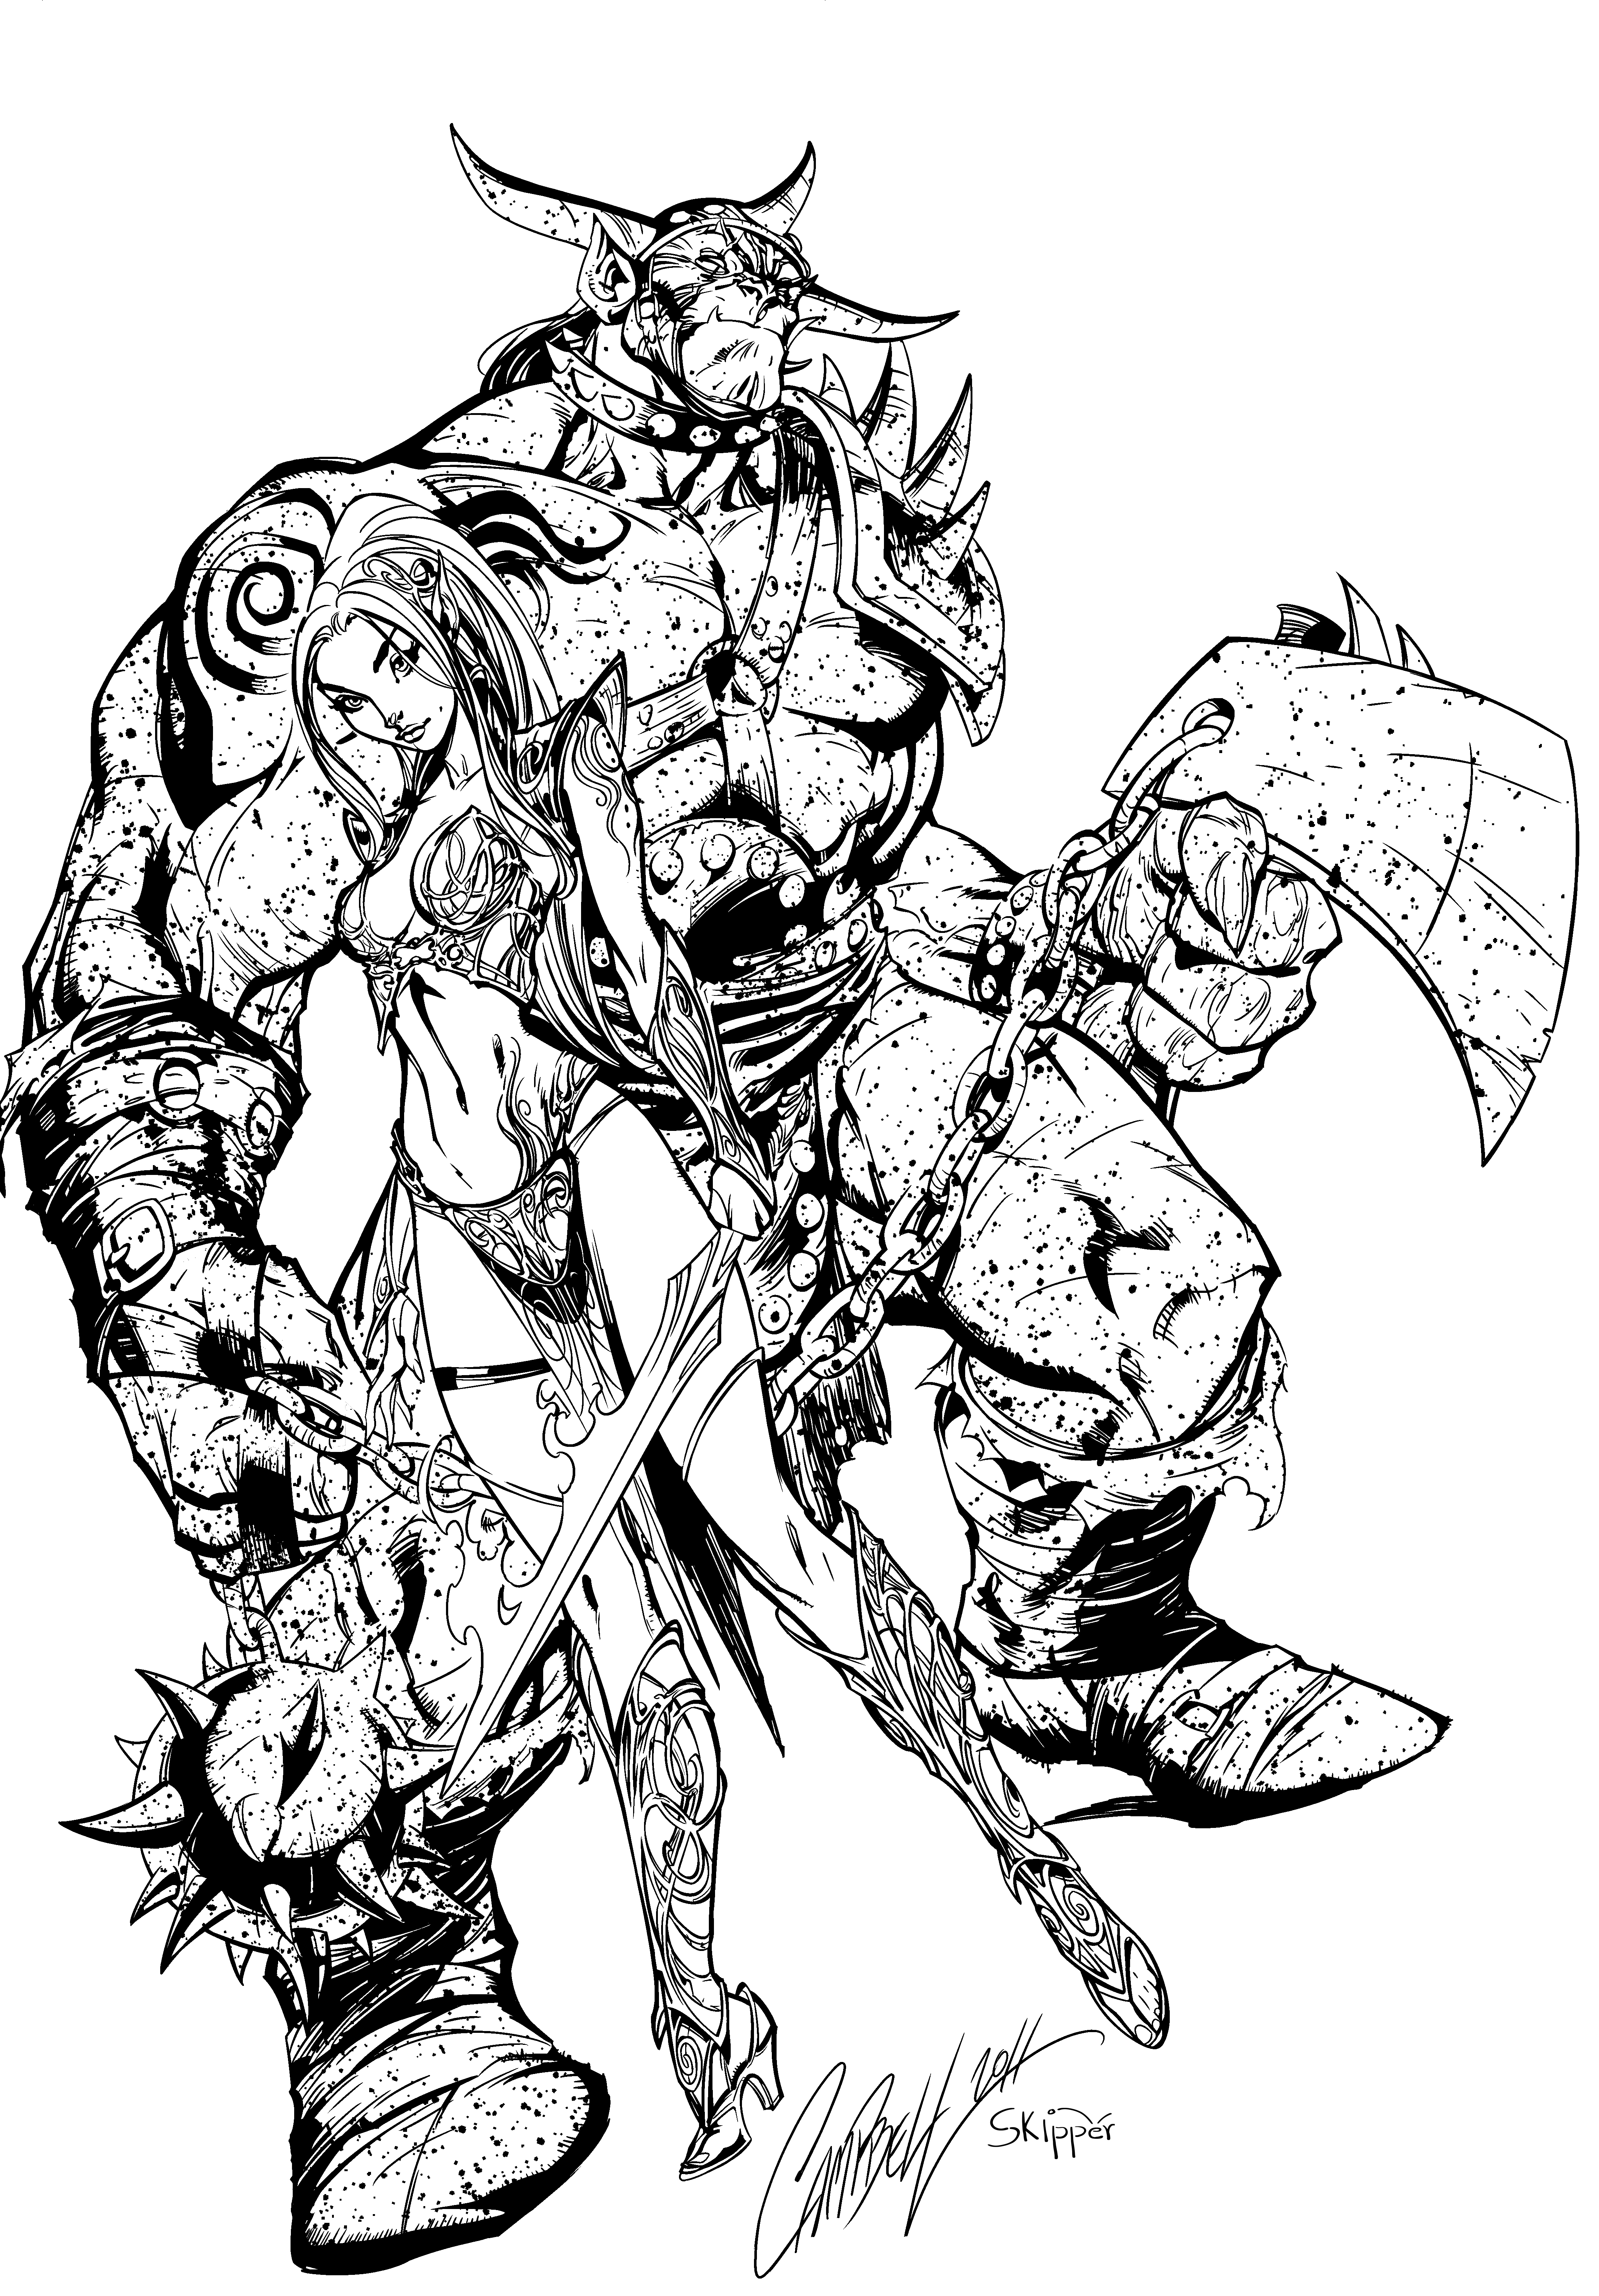 Ares and hades inks by j skipper on deviantart for Hades coloring page